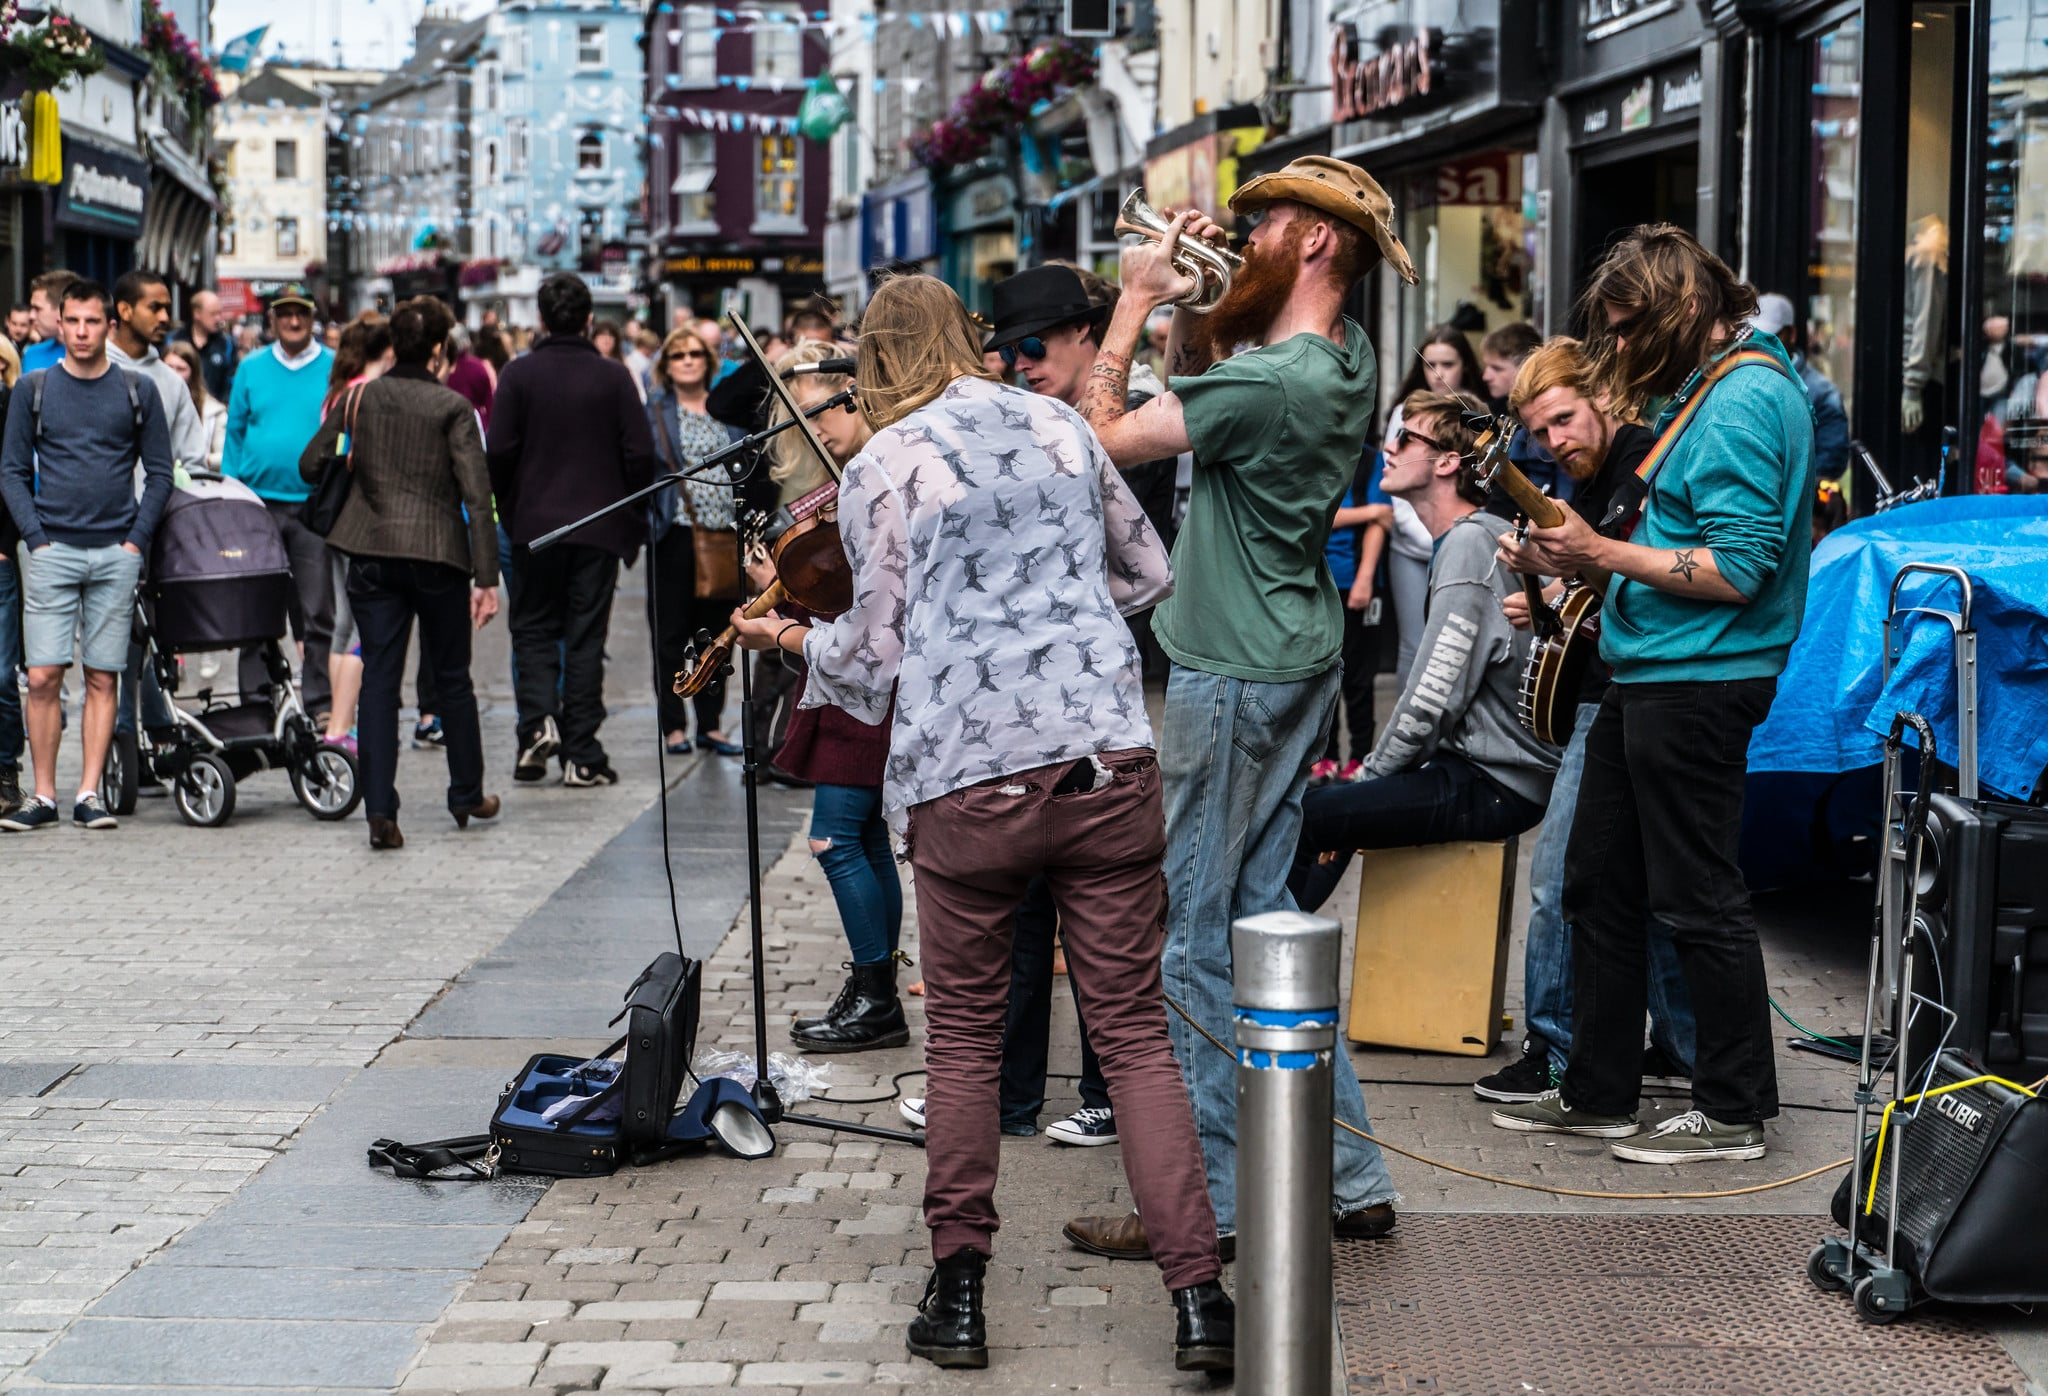 Listening to live music is one of the best things to do in Galway Ireland